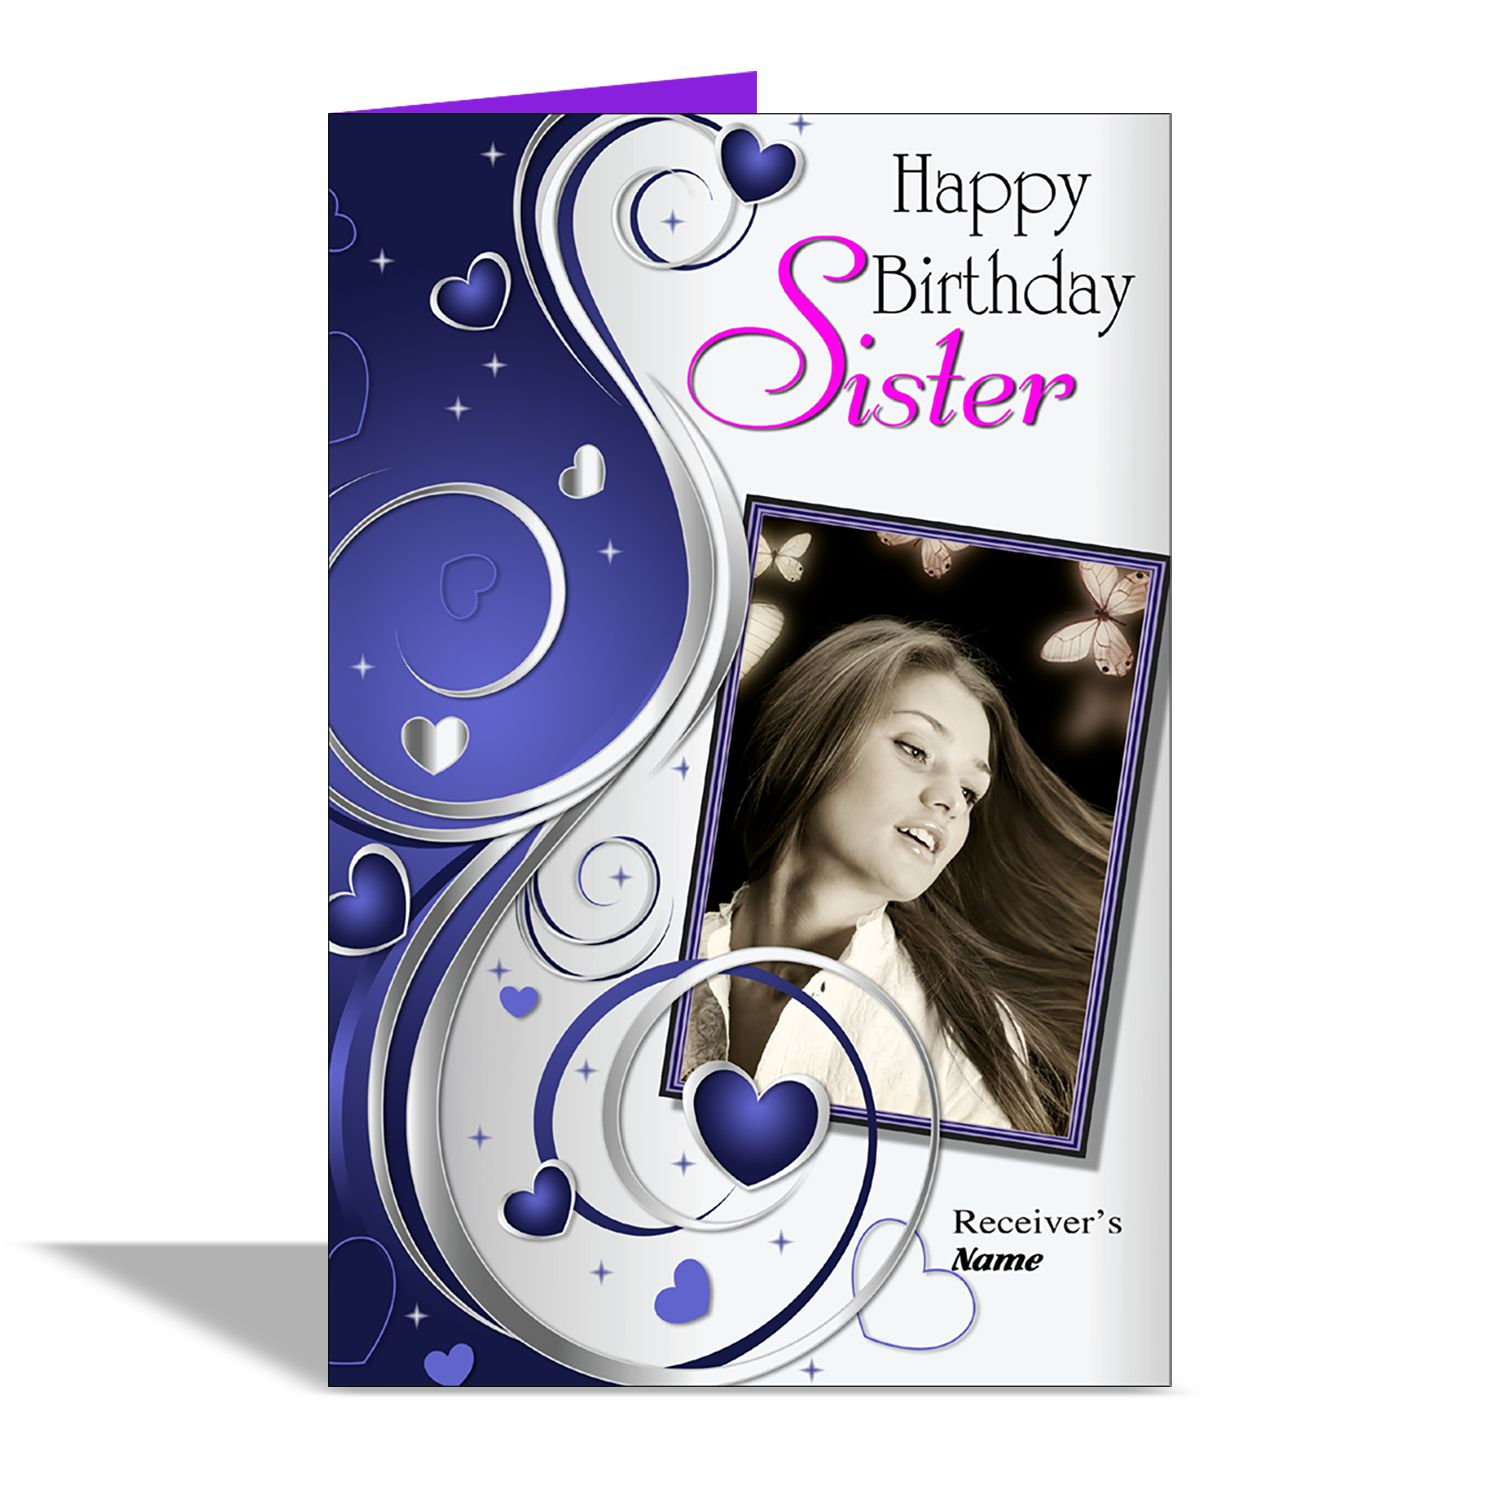 Alwaysgift Happy Birthday Sister Greeting Card Buy Online At Best Price In India